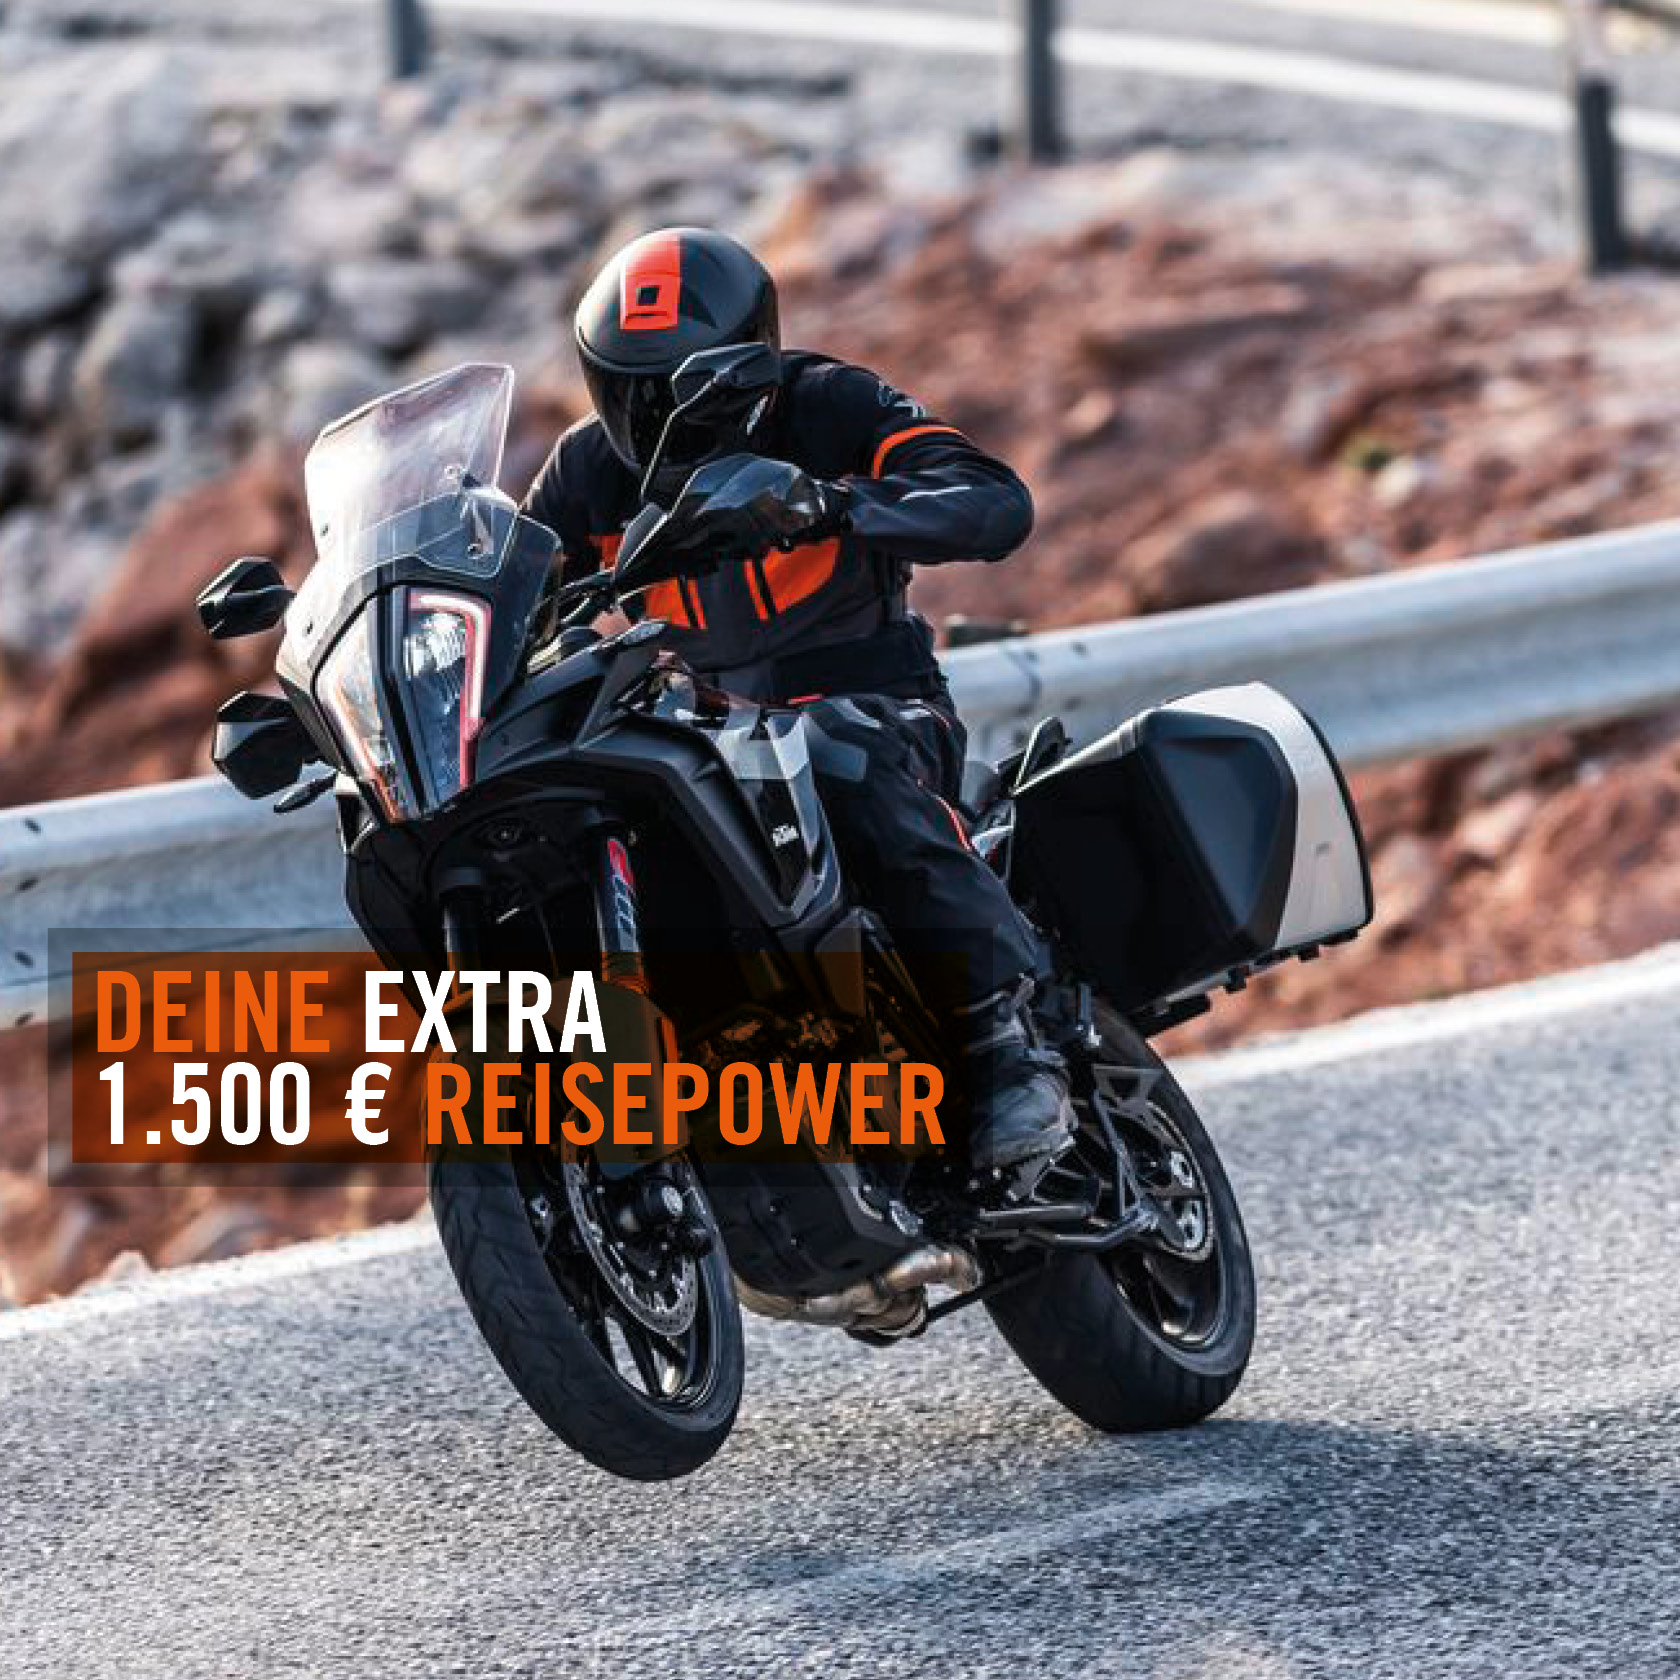 DEINE EXTRA REISEPOWER - KTM ADVENTURE SONDERAKTION!